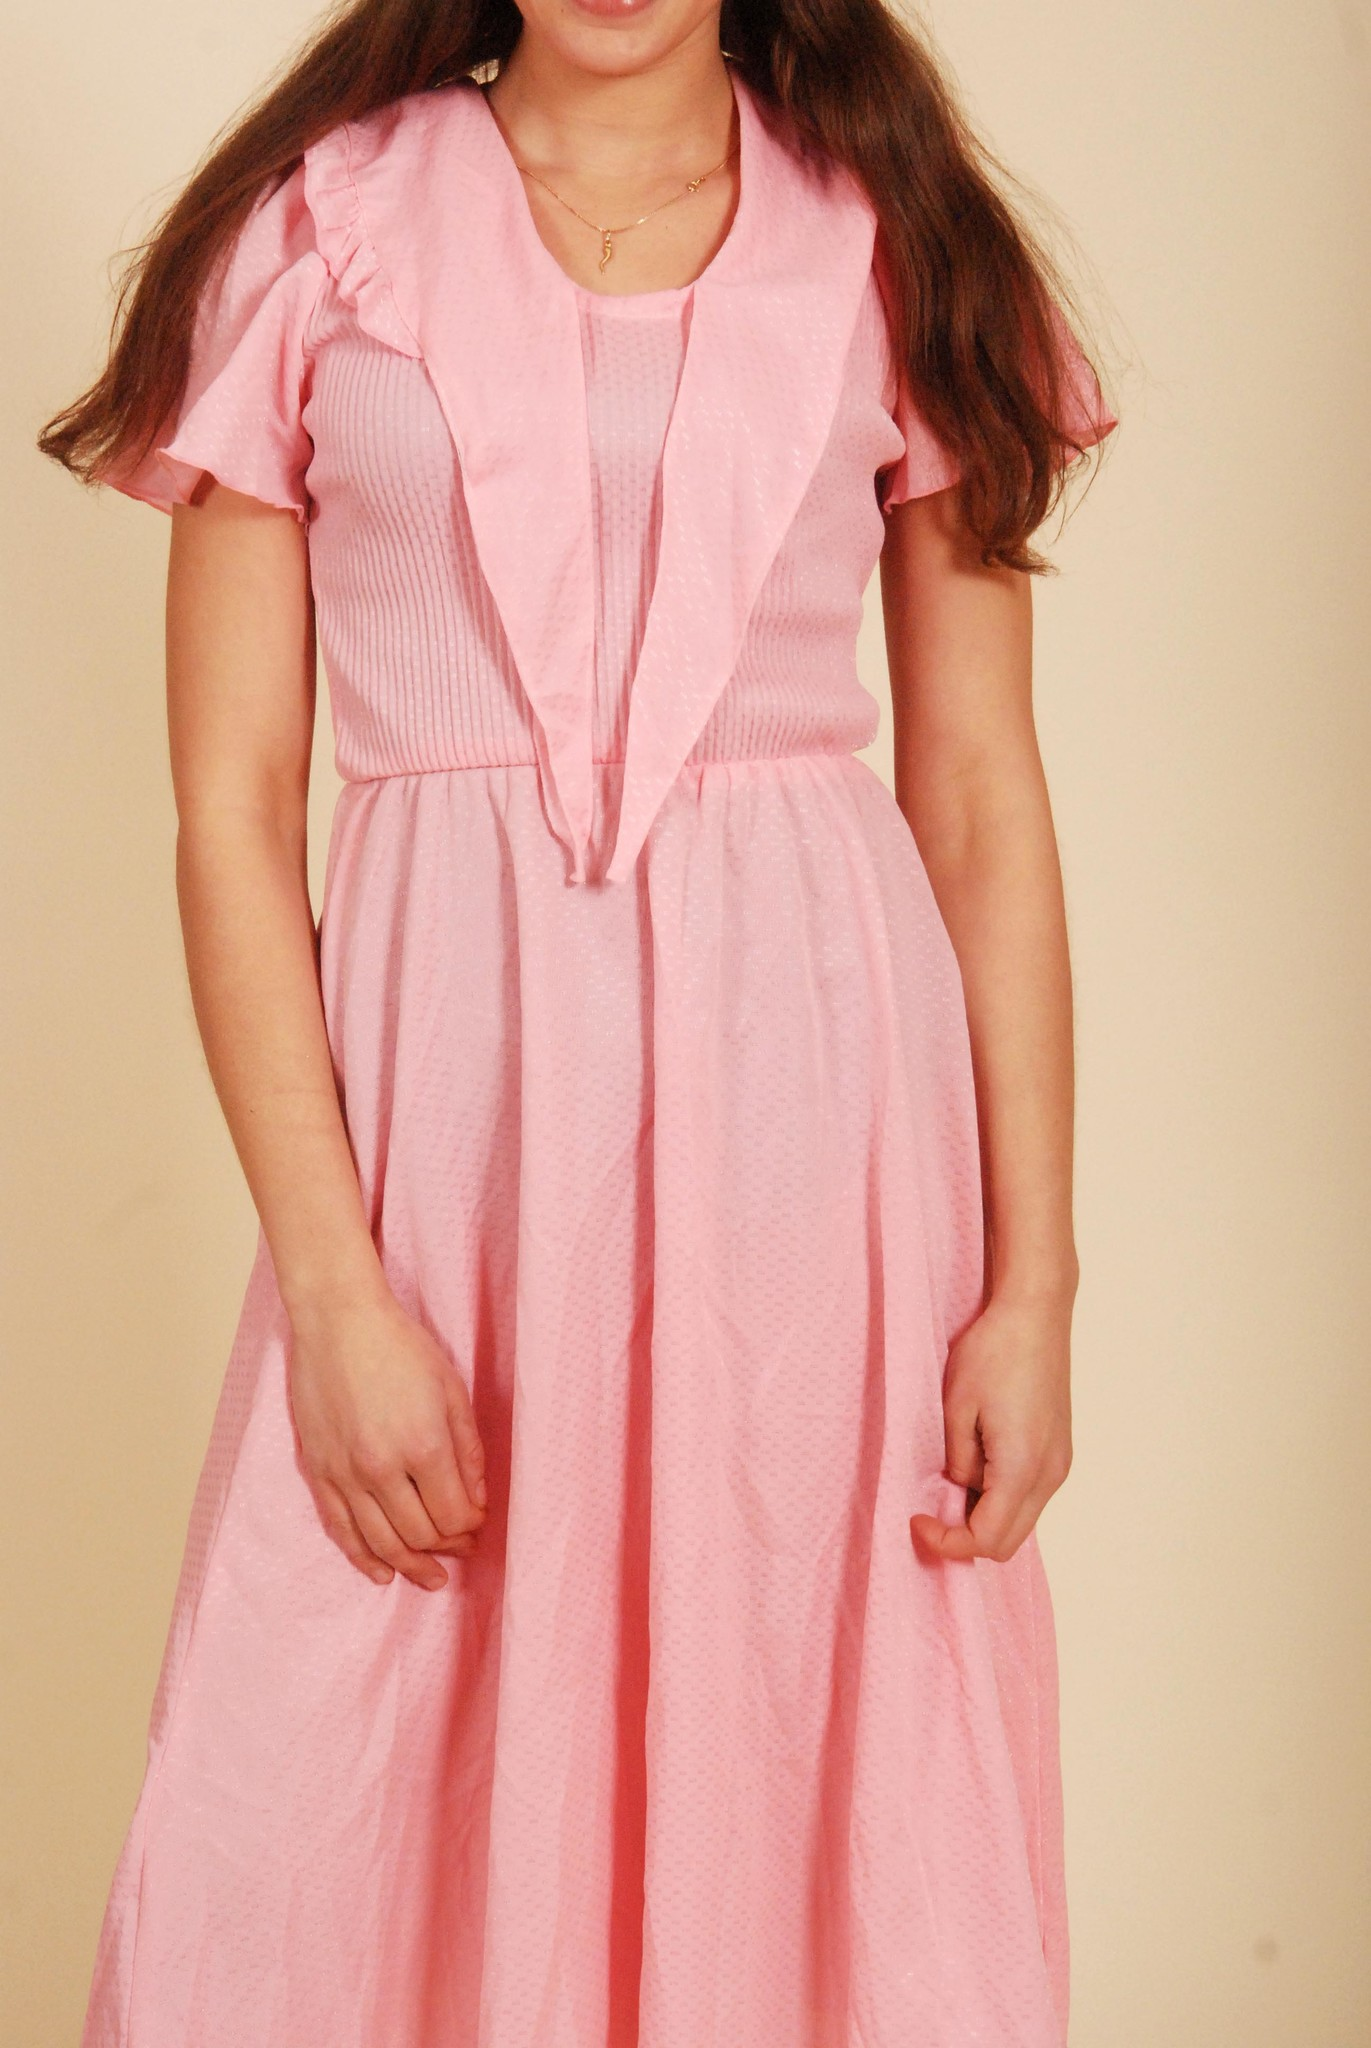 Pink 80s dress with elastic waist